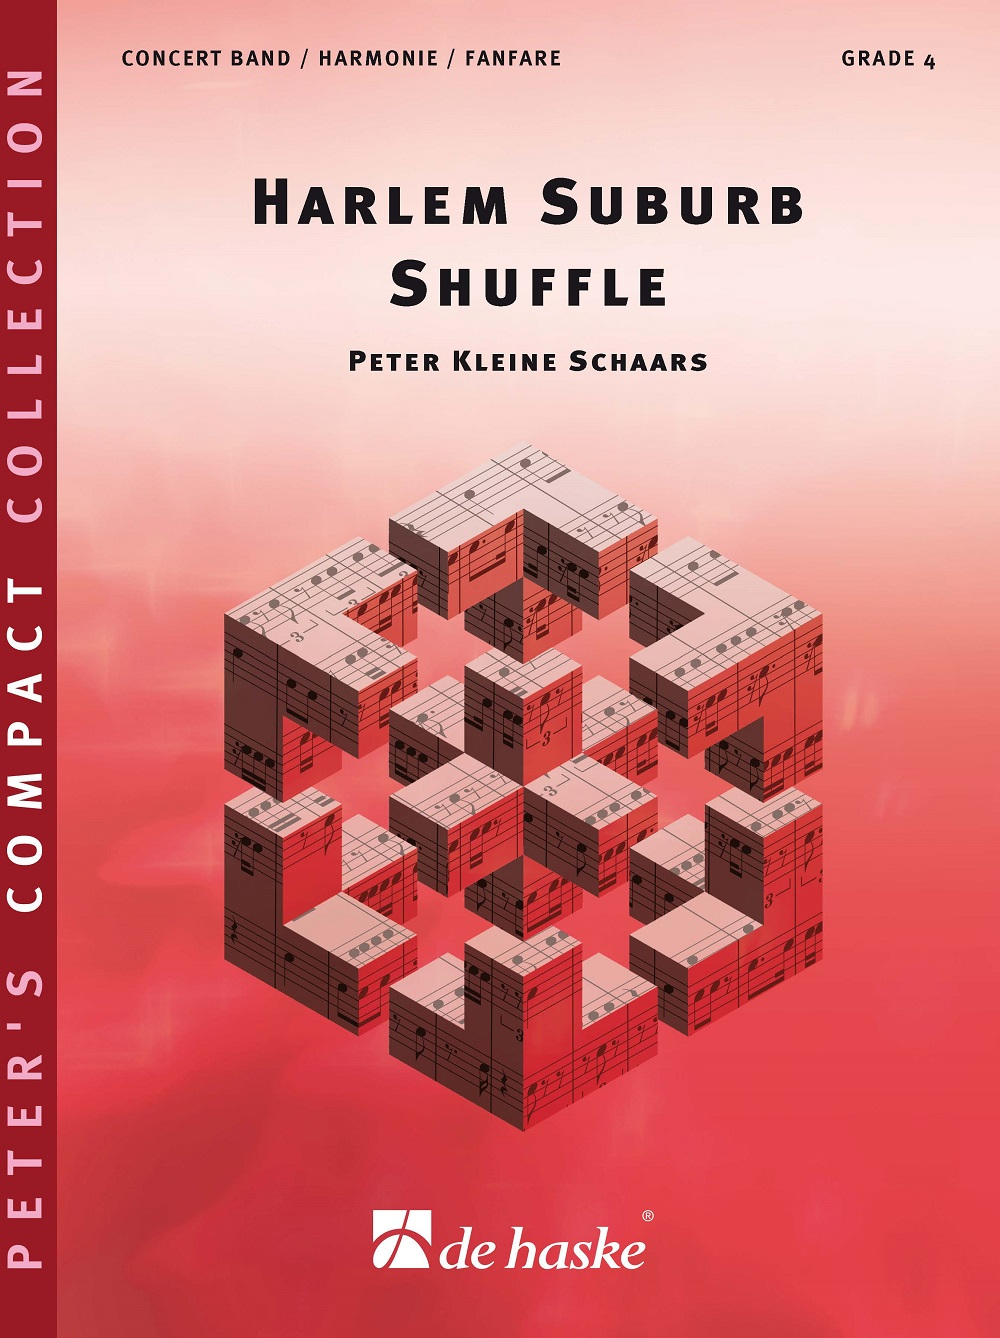 Peter Kleine Schaars: Harlem Suburb Shuffle: Concert Band: Score and Parts